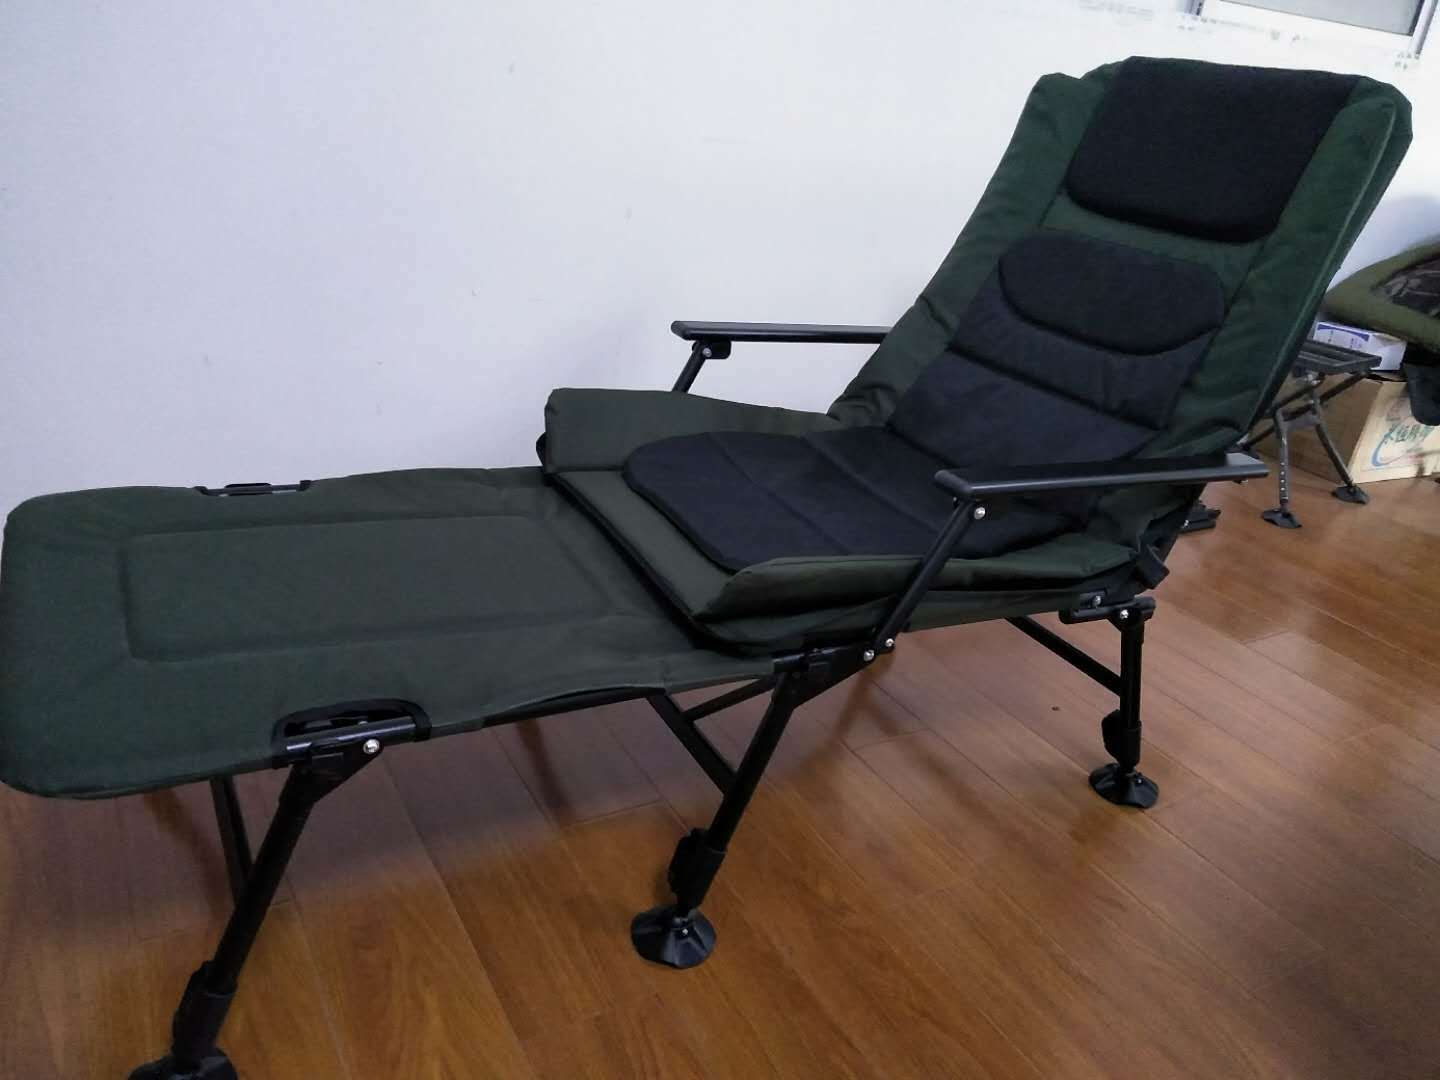 Foldable Bed Chair Hot Item Folding Carp Fishing Bed Chair Camp Recliner Beds Foldable Bedchair